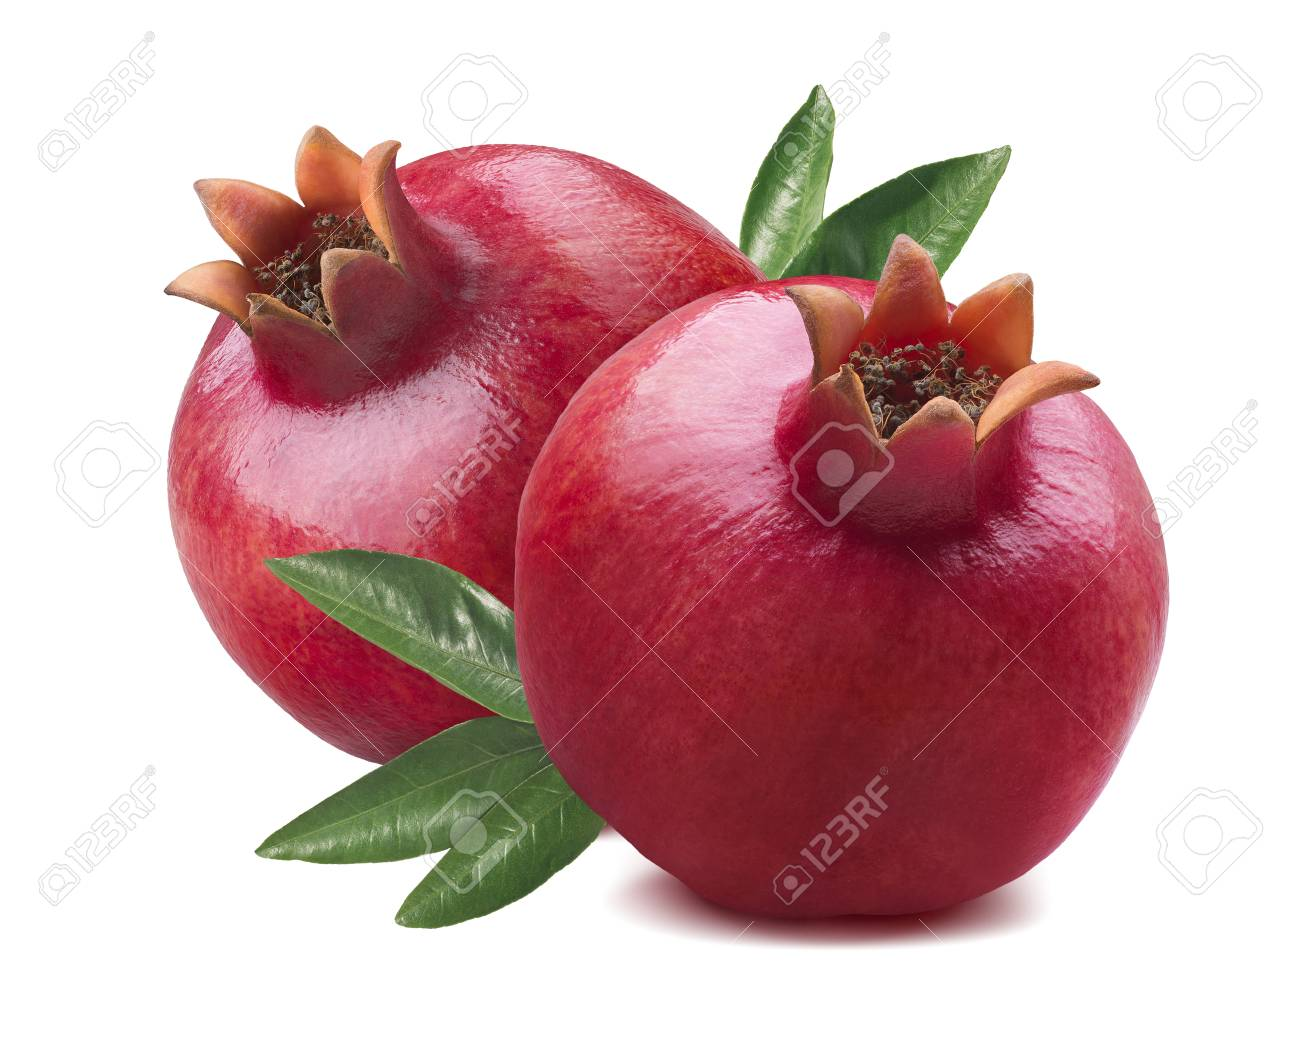 2 fresh whole pomegranates with leaves isolated on white background as package design element - 63750608